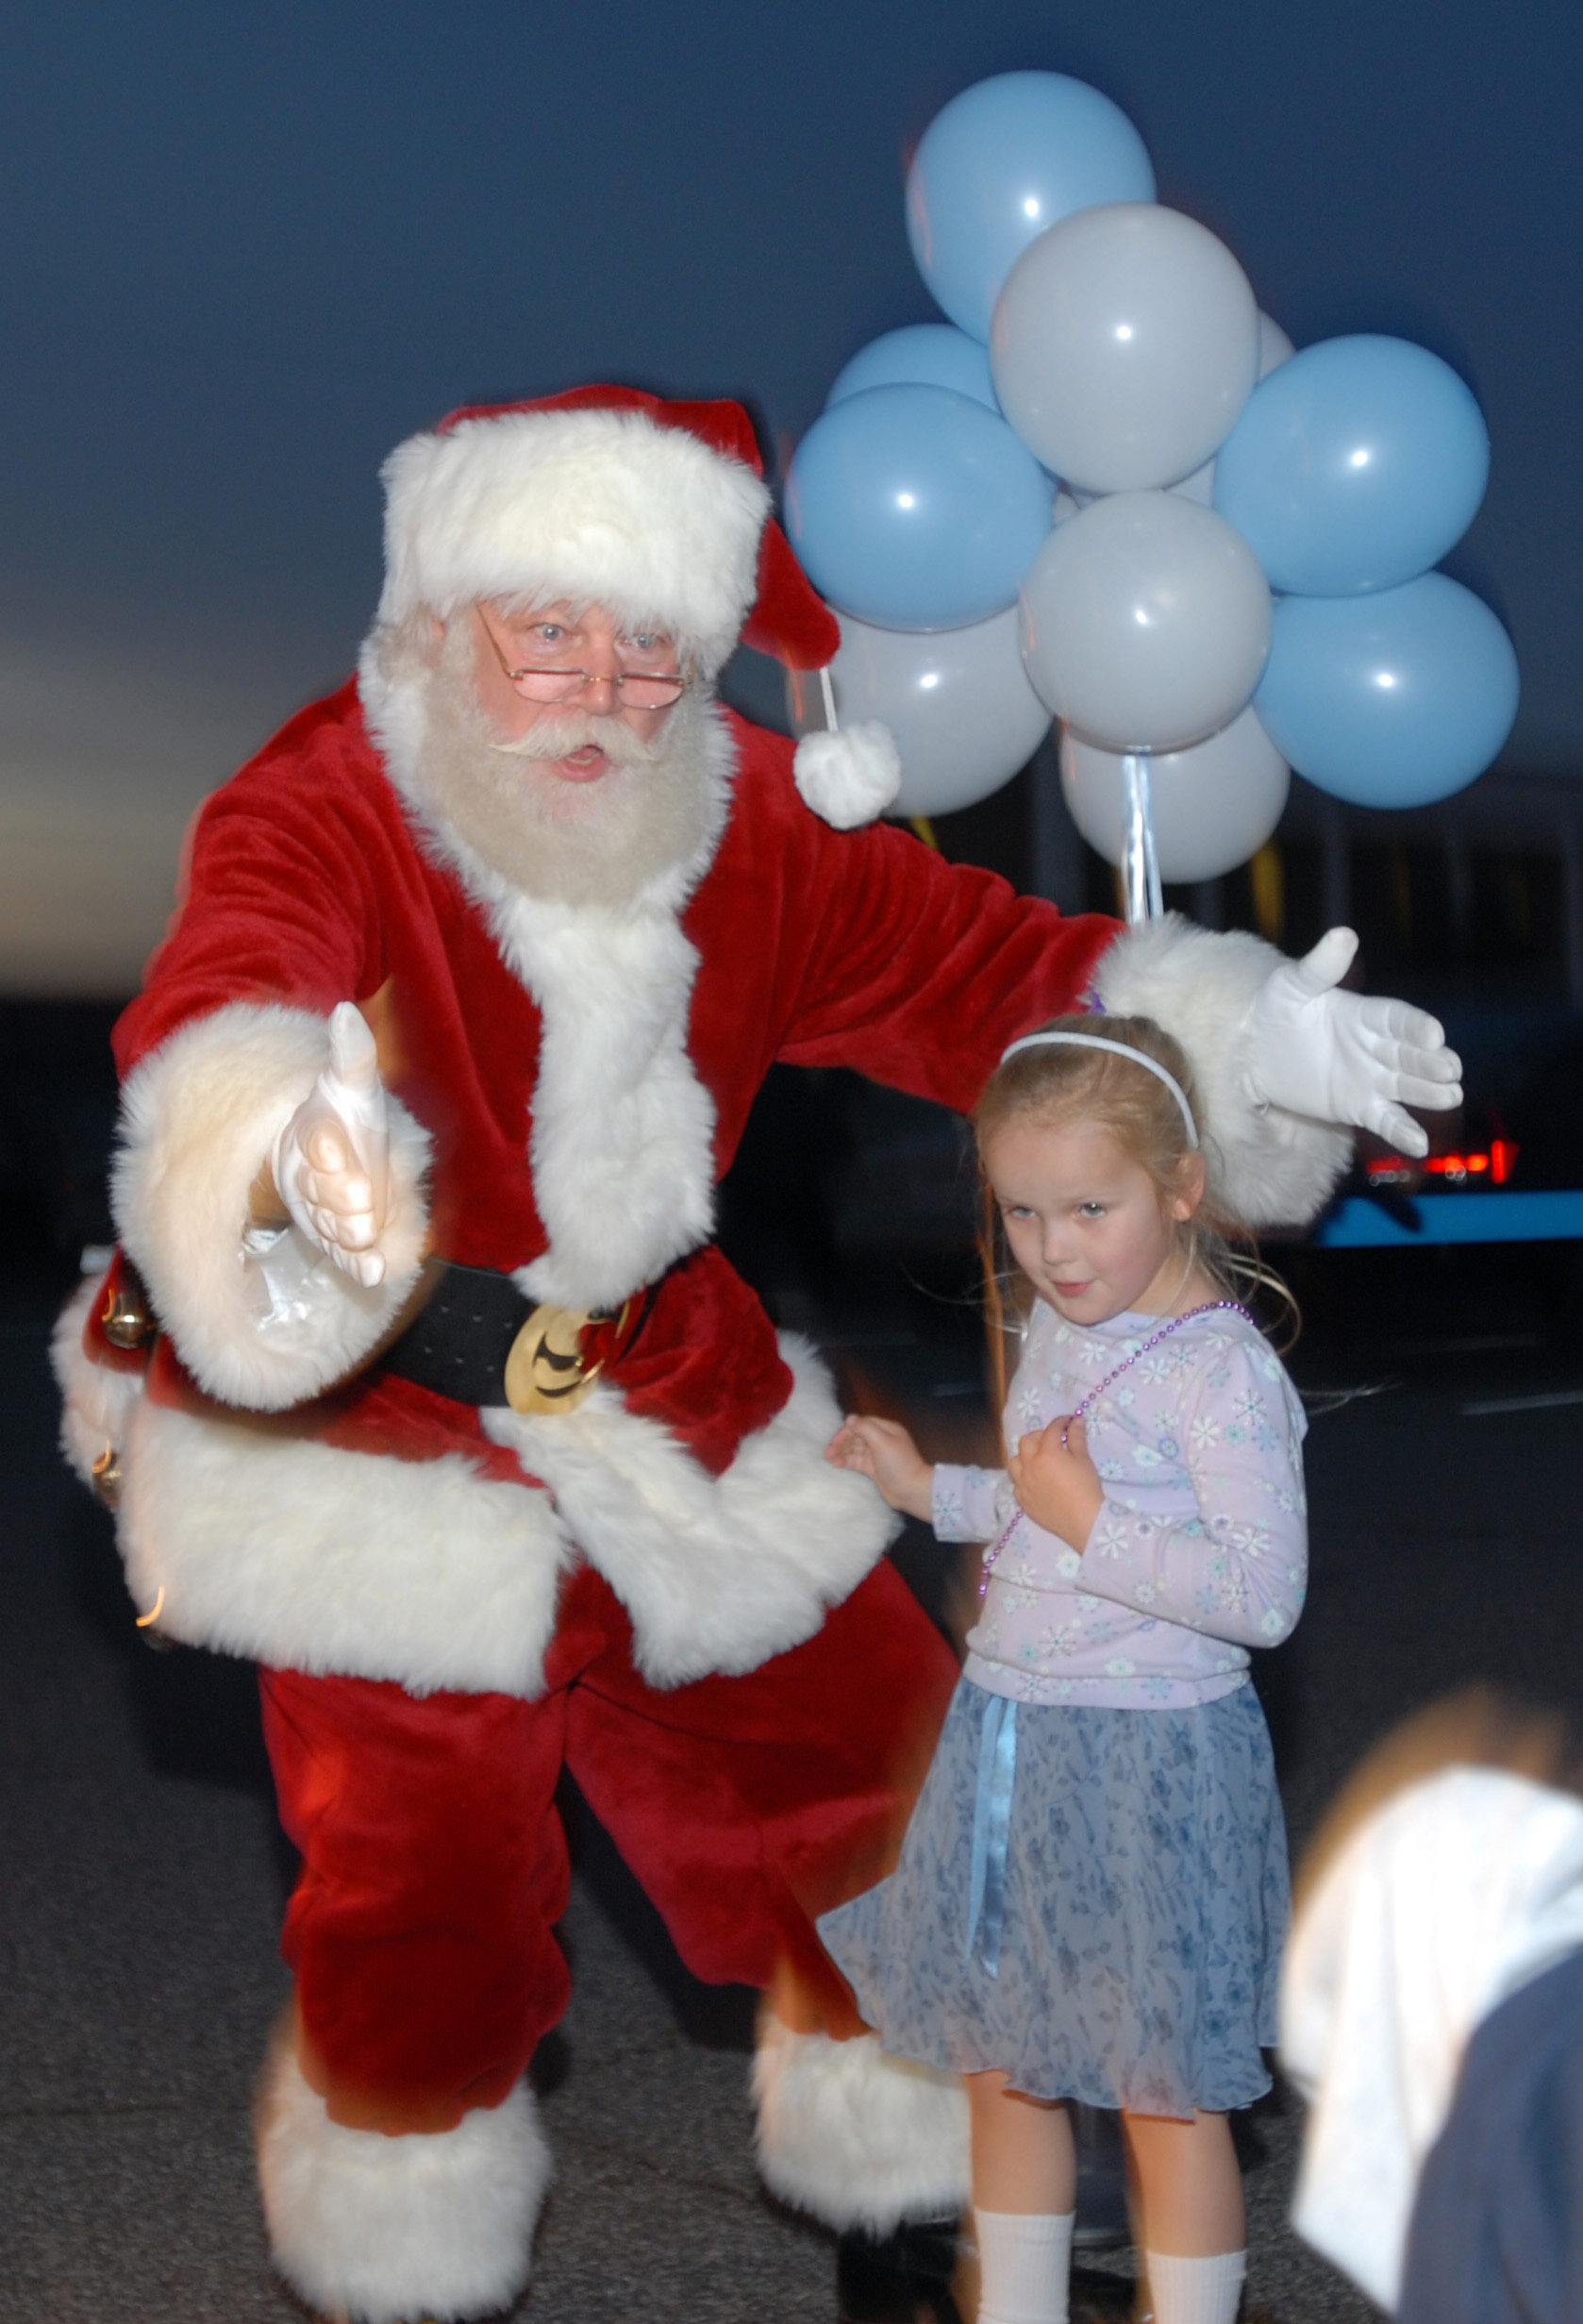 White haired cop is touched when sweet little girl